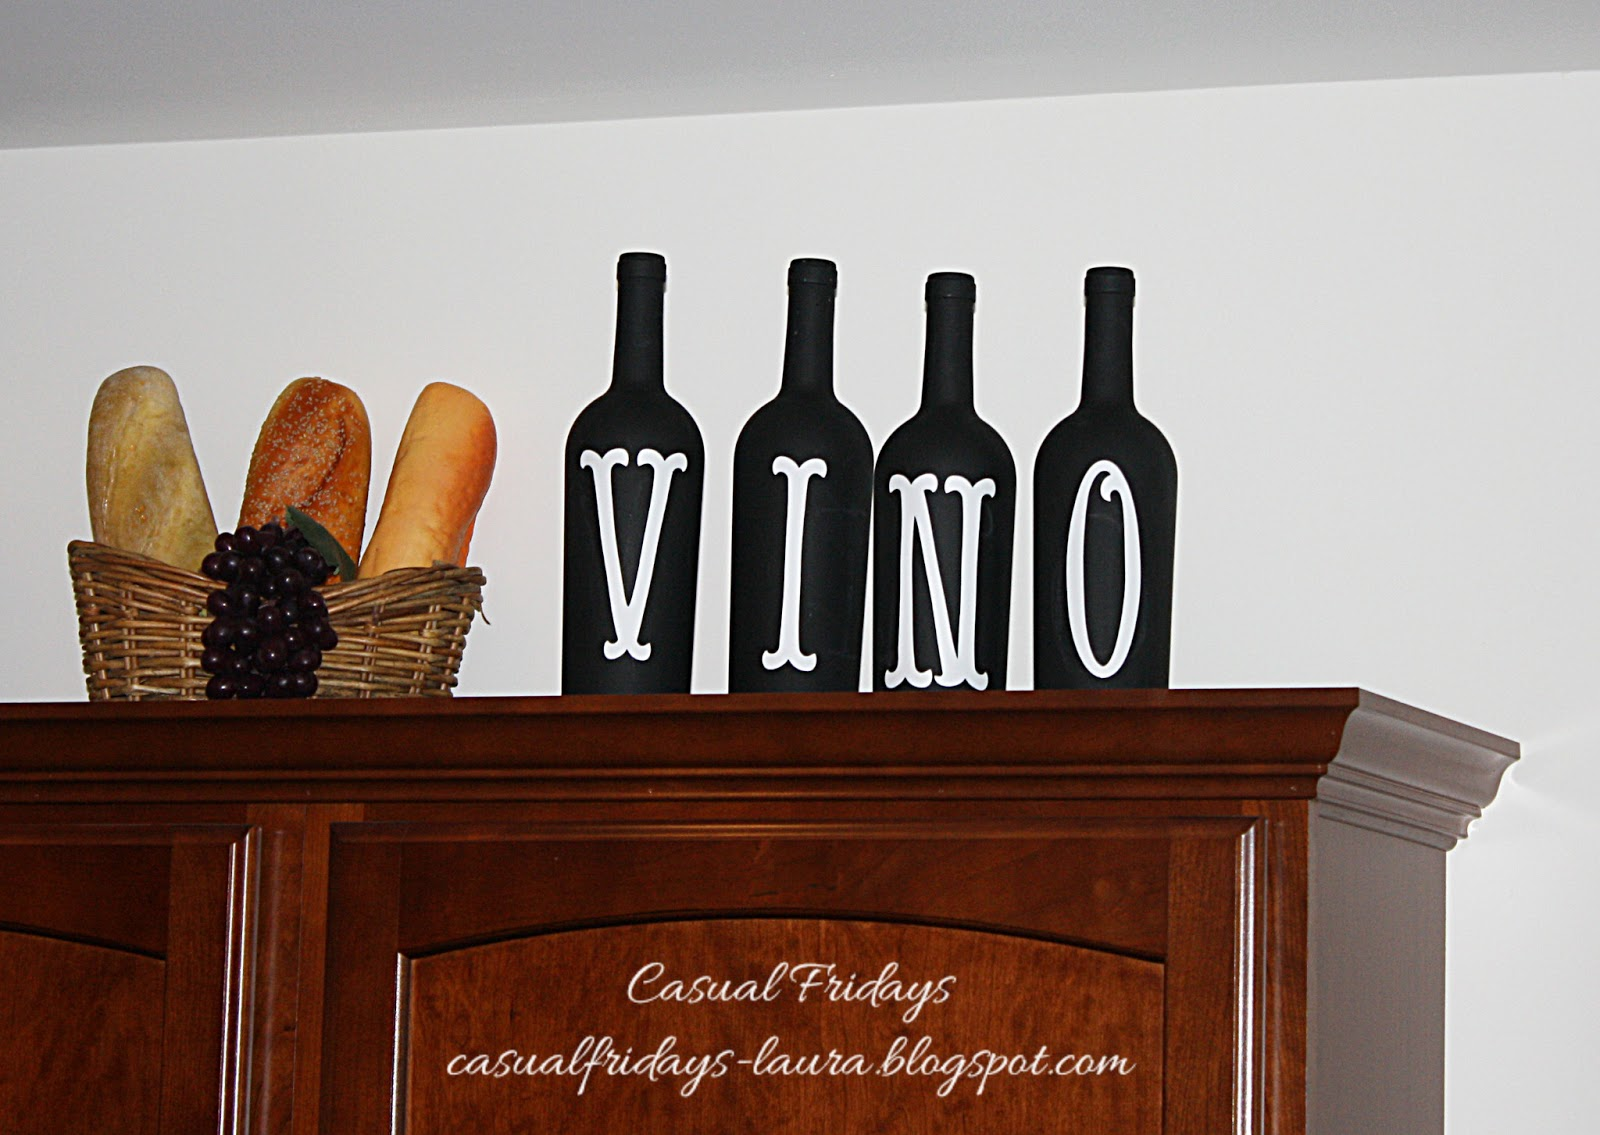 Chalkboard wine bottles from Casual Fridays